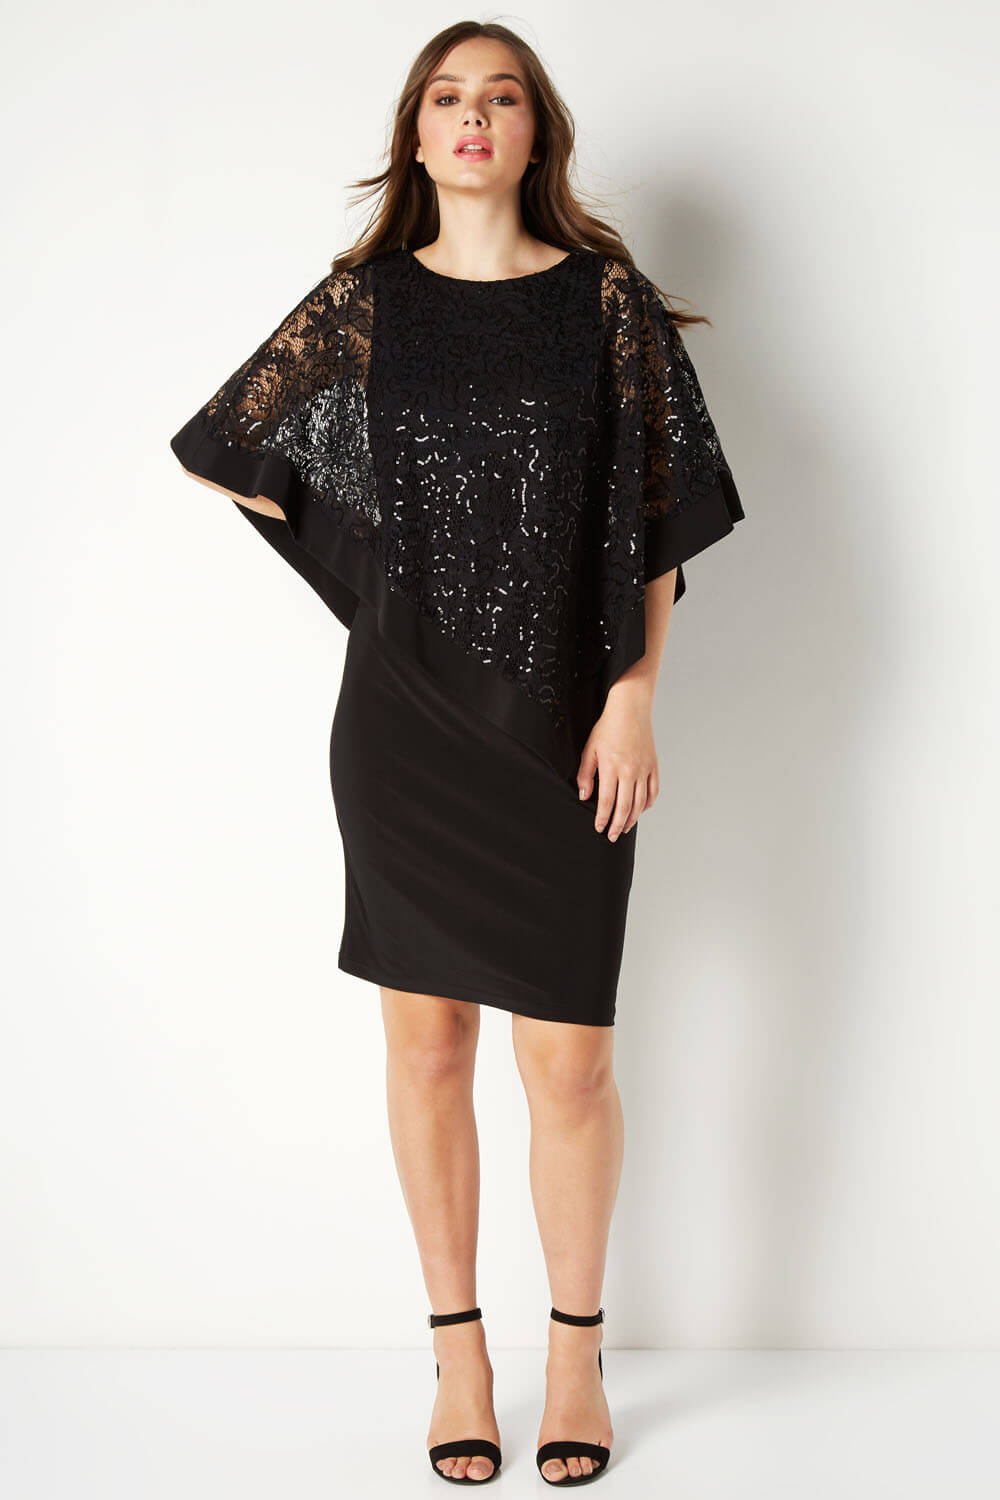 Roman-Originals-Women-039-s-Sequin-Lace-Boat-Neck-Overlay-Knee-Length-Dress thumbnail 15